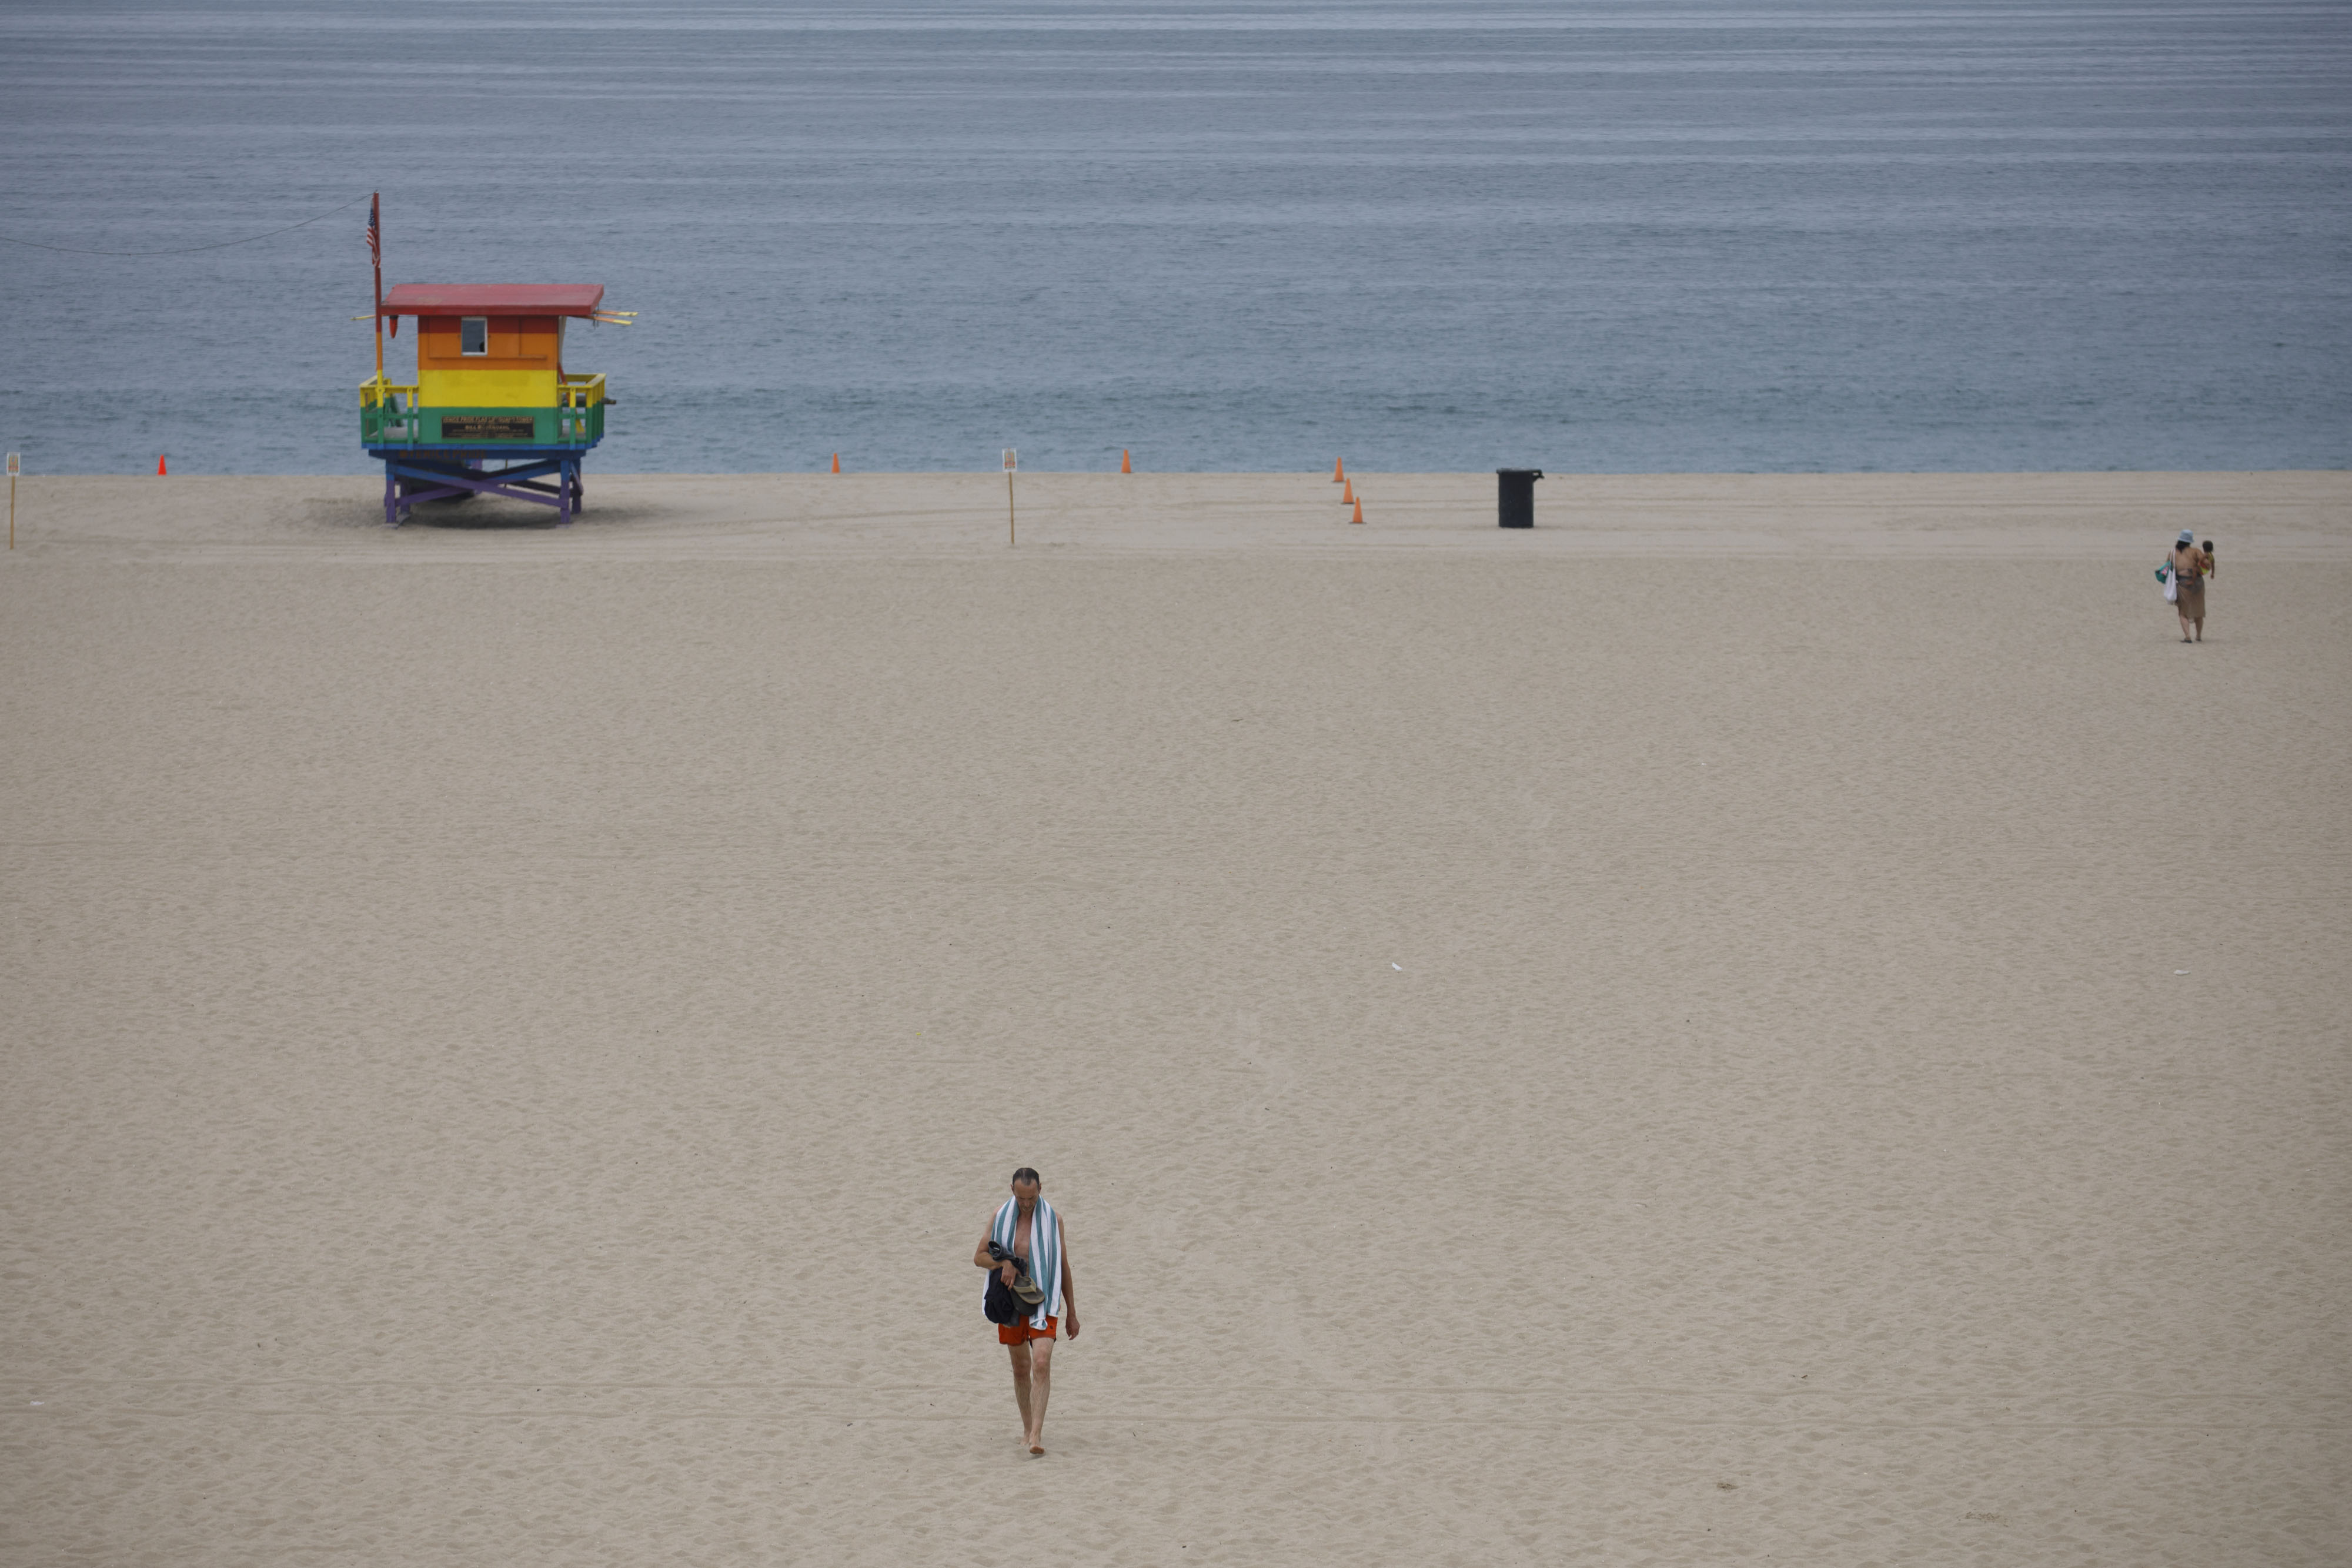 LA County Beaches Closed for Fourth of July Weekend